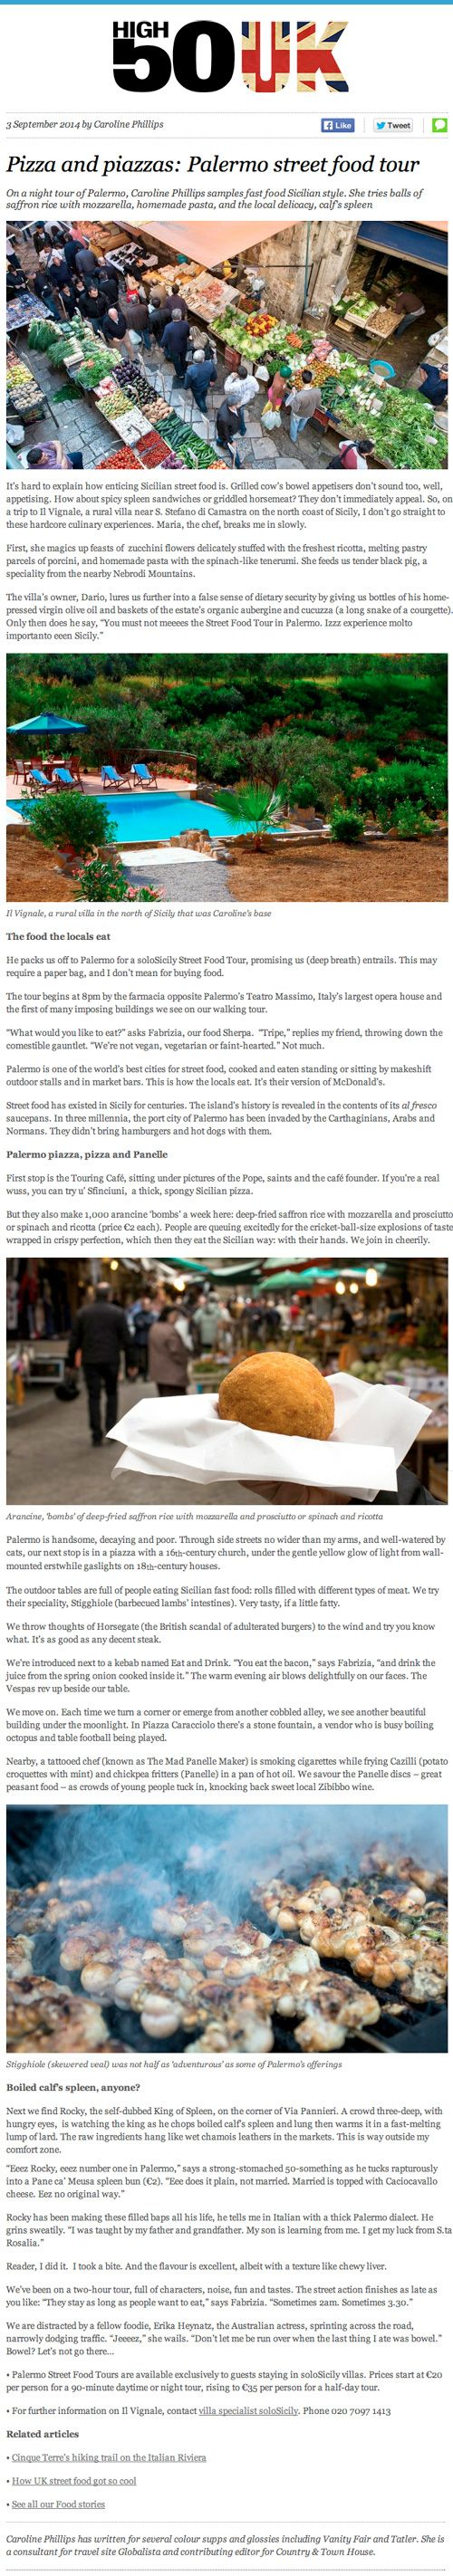 @high50uk uncovers the history of Sicily on a Street Food journey through Palermo's markets and alleyways. #StreetFoodTour and our villa Il Vignale near Cefalù are mentioned in the article.